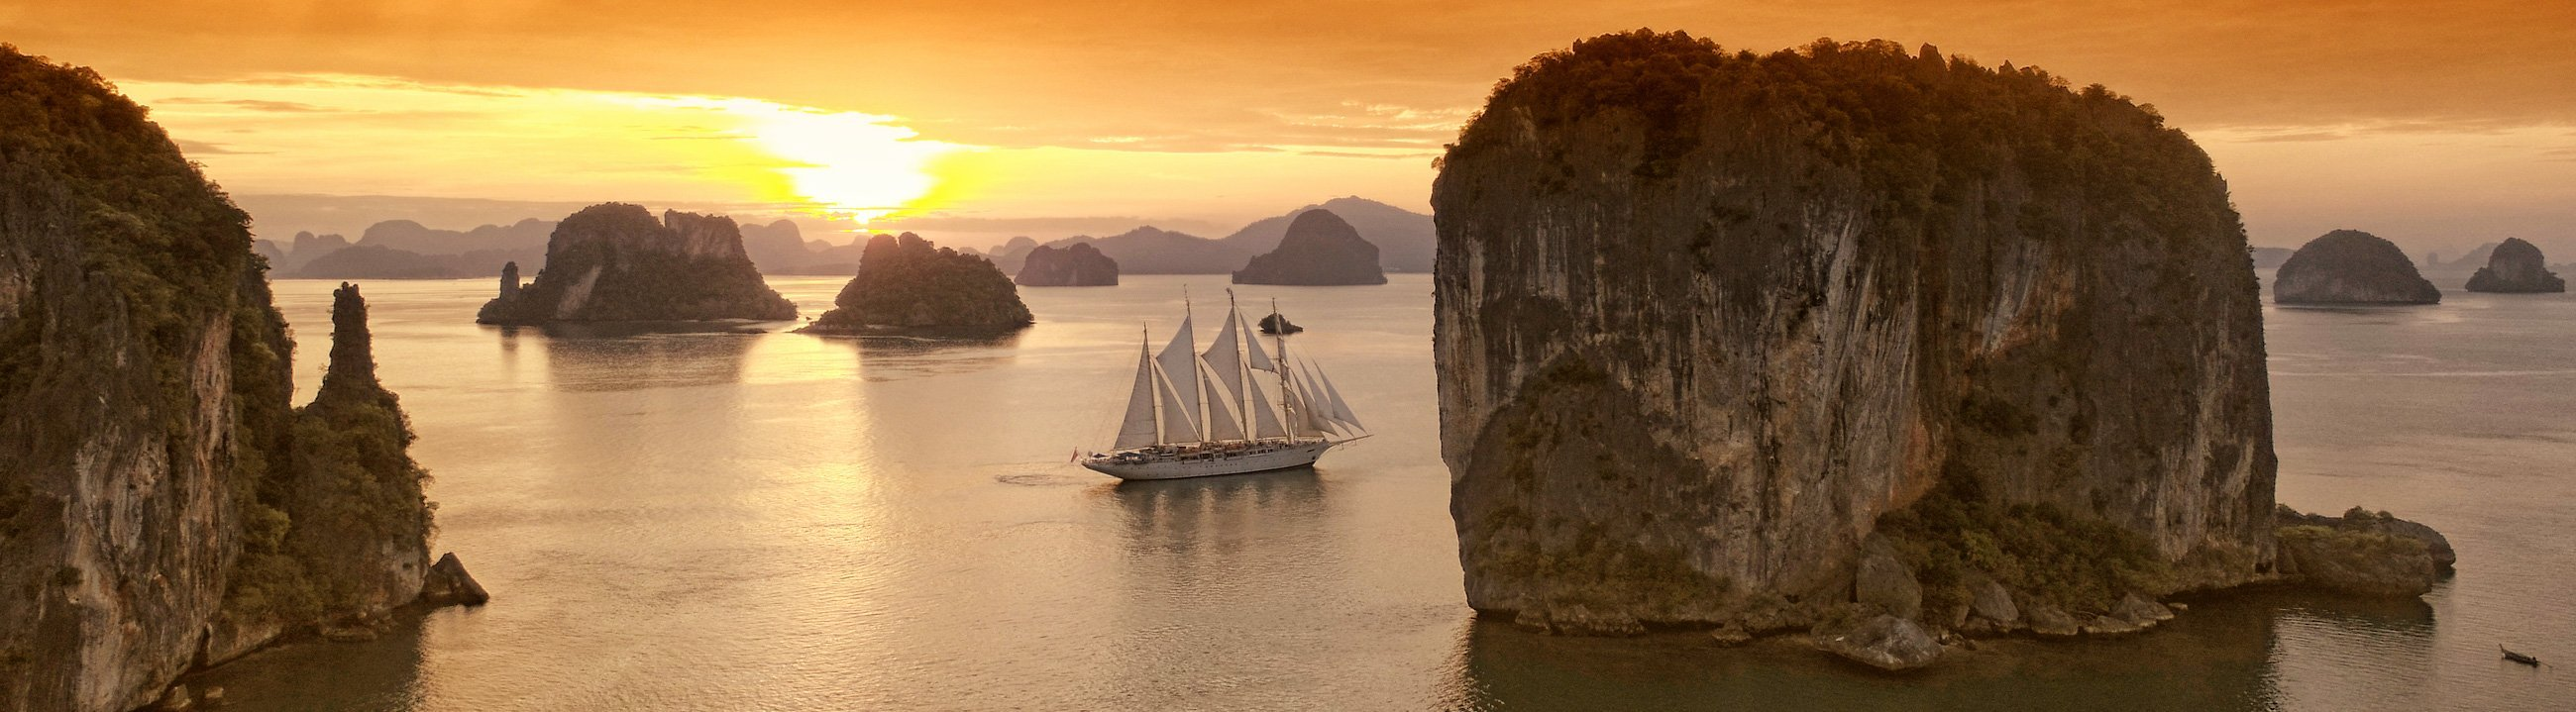 Star Clipper bei Sonnenaufgang in Thailand